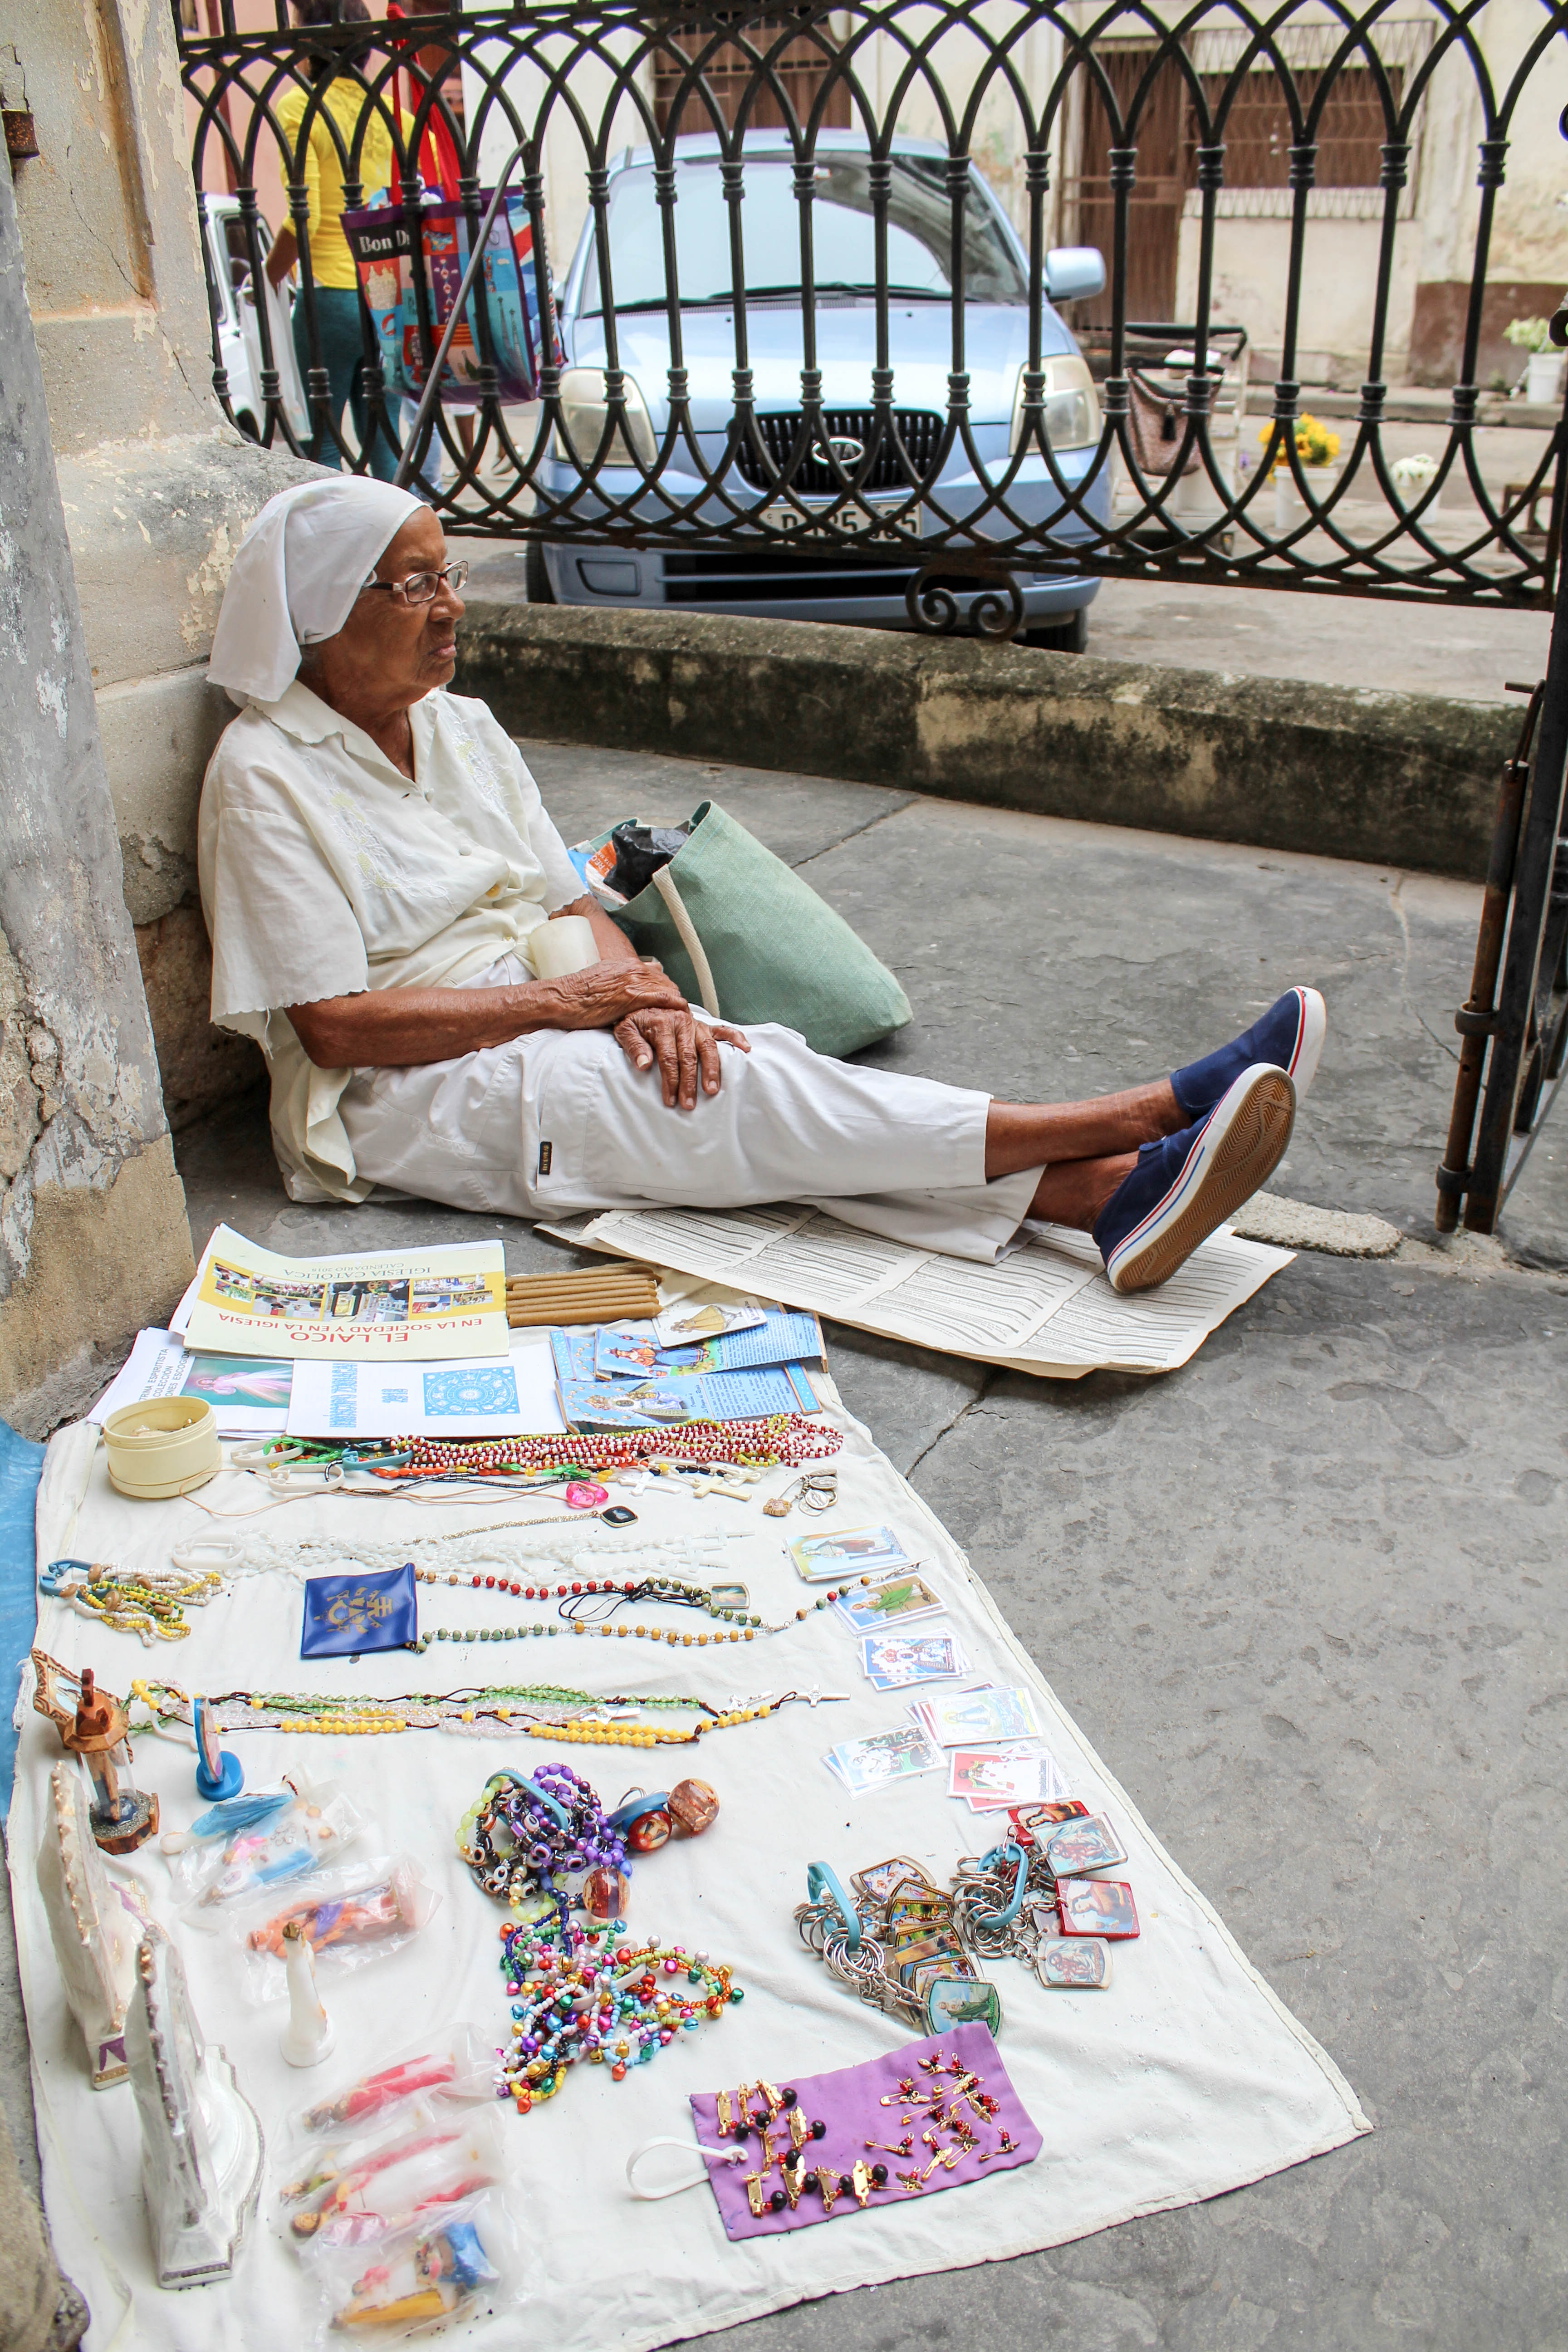 Regla Valdez, 88, sits outside the front doors of Our Lady of Mercy Church on May 24 to sell various items pertaining to Santería worship. Valdez, who has been selling these objects for 50 years, said she chose the church because of how popular it is. In years past she said she was told to leave the church stoop, but lately that has not been the case. (Photo by Paxtyn Merten/The GroundTruth Project)